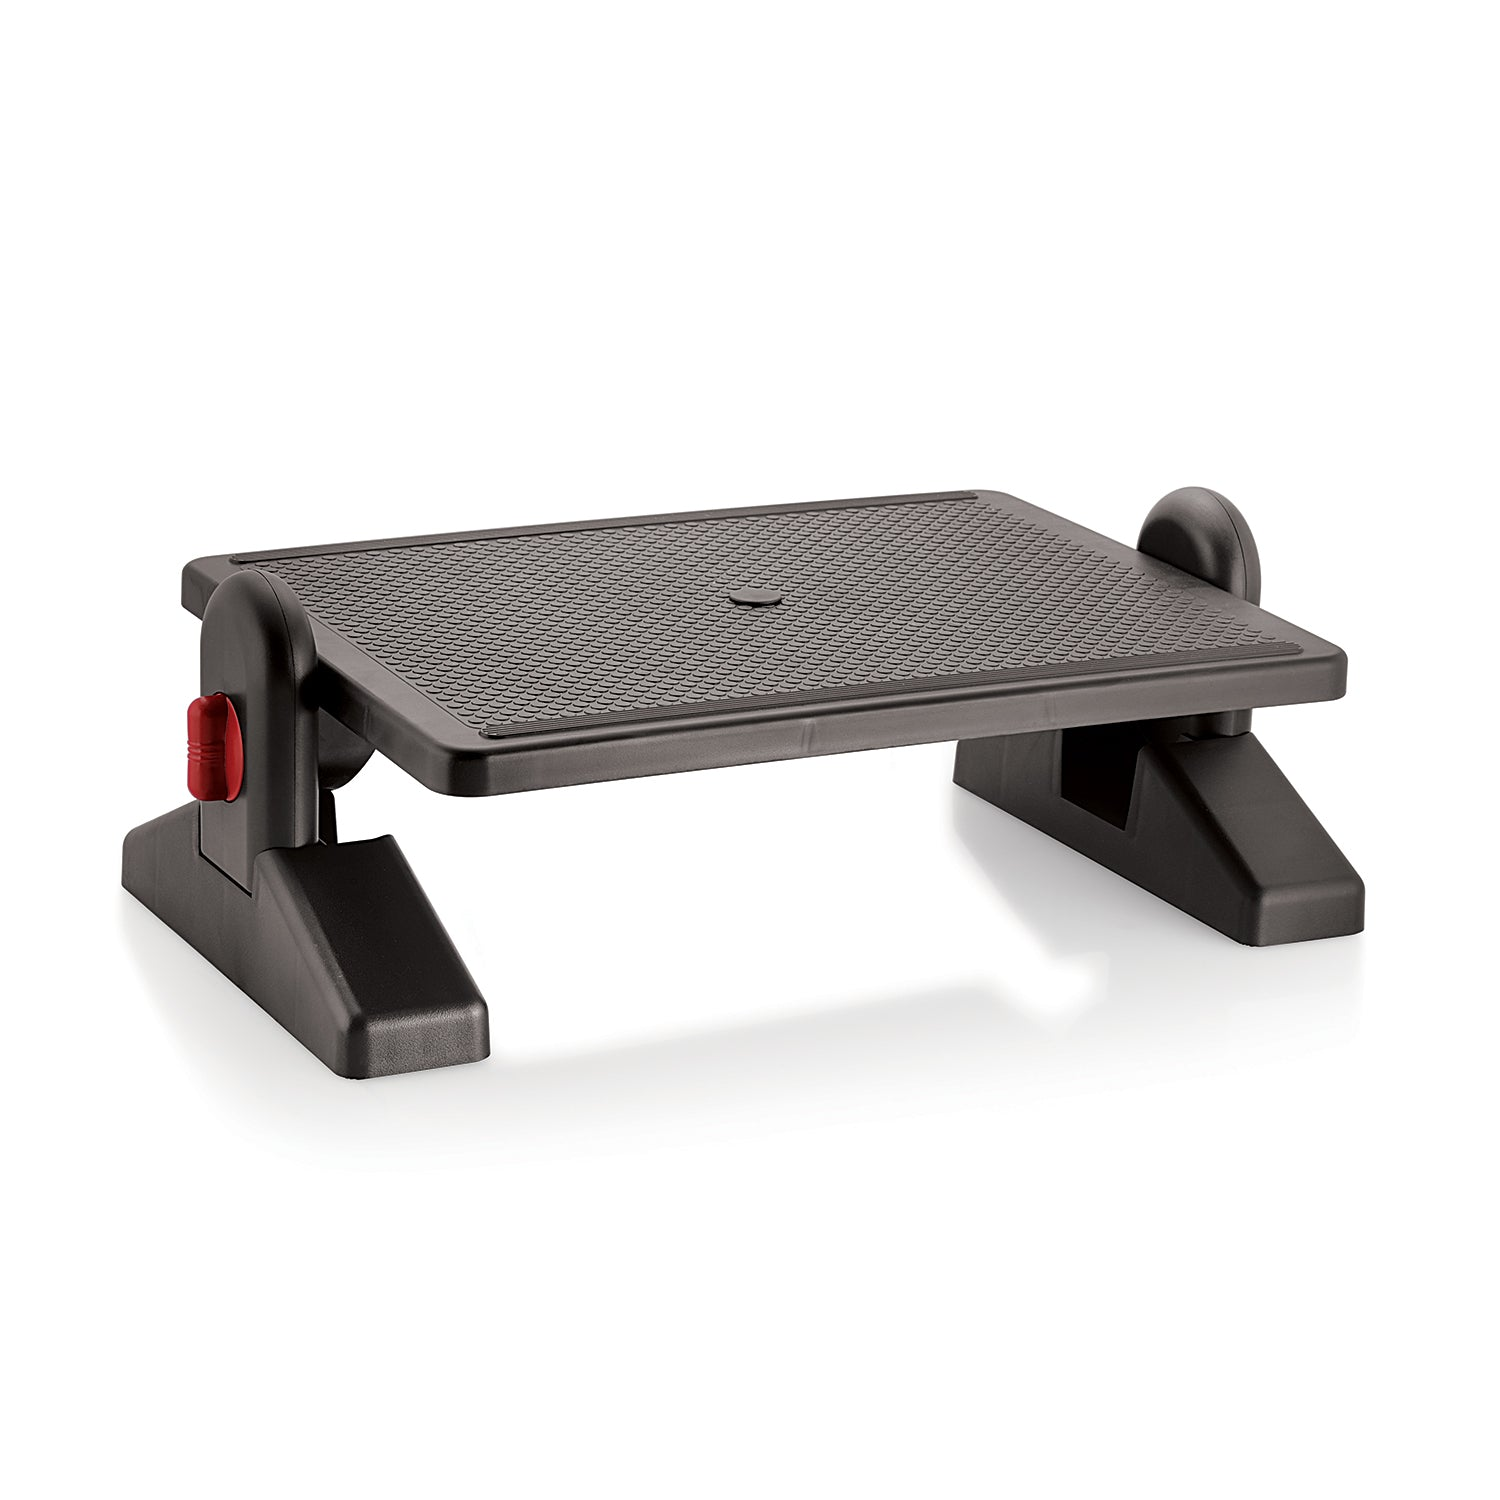 PALO09 Ergonomic Height Adjustable Footrest - With Angle Locking